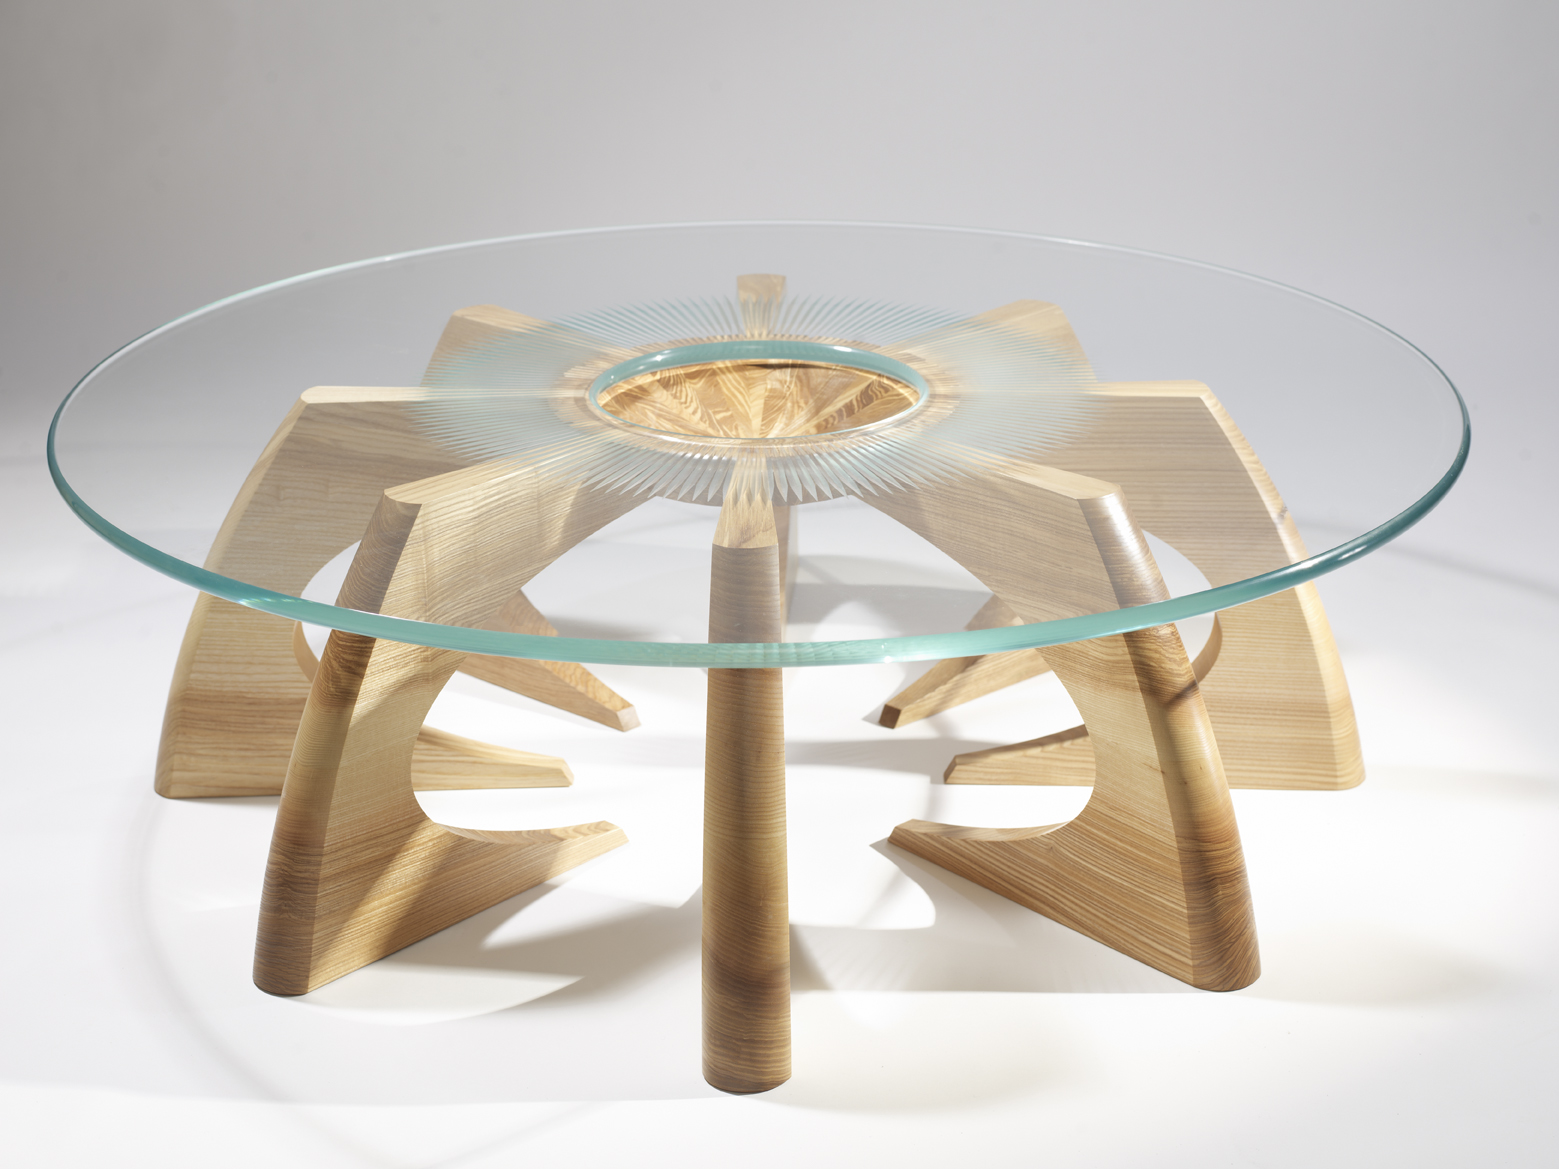 Interior house design a minimalist table but can produce for Table design ideas